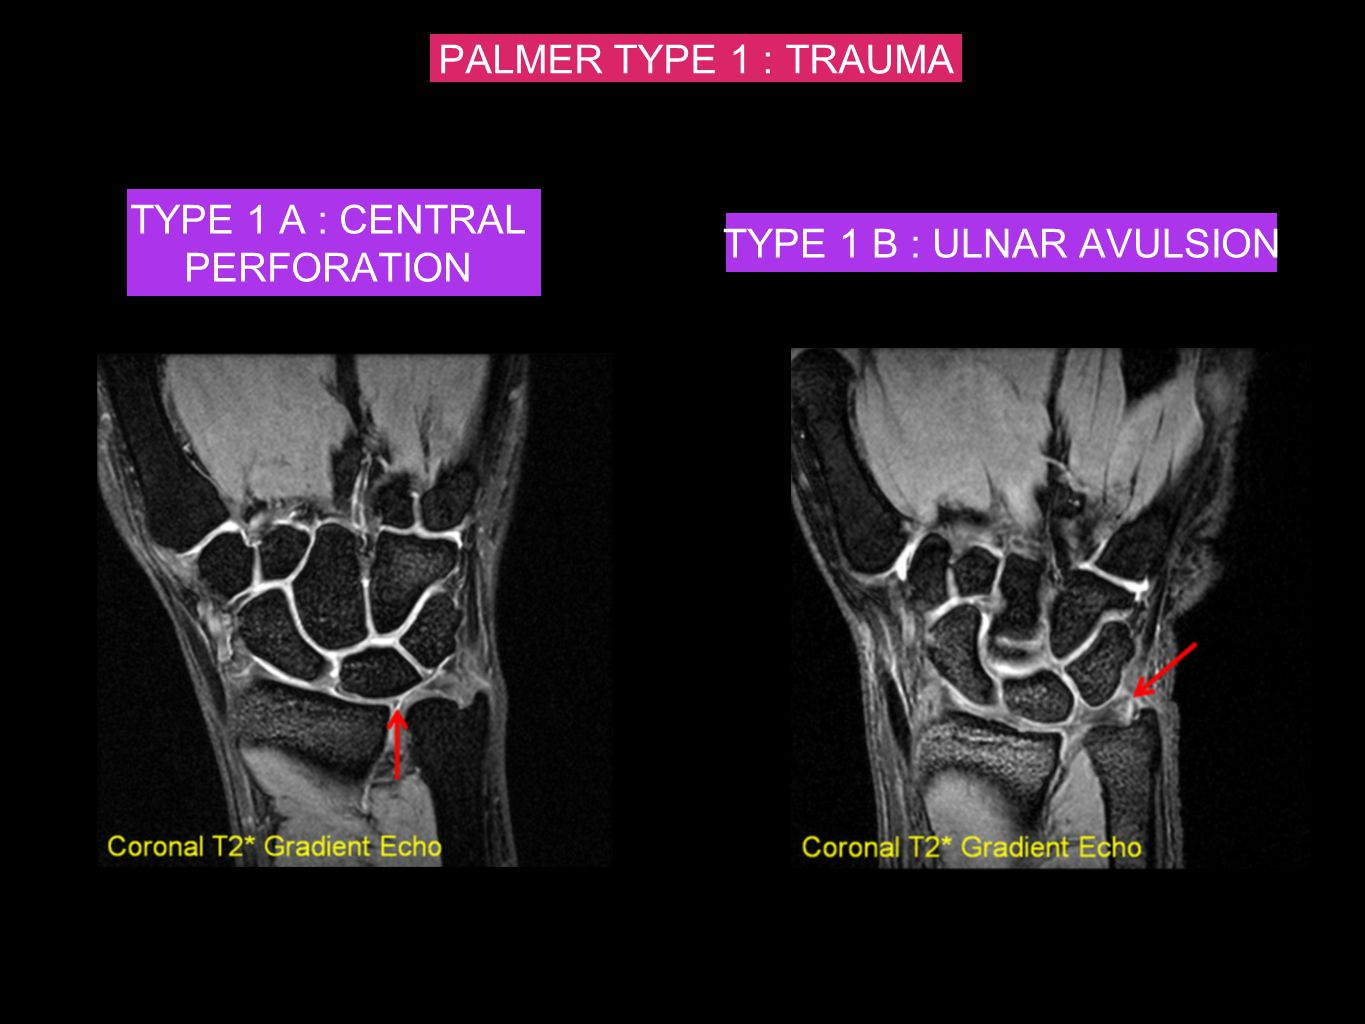 PALMER TYPE 1 : TRAUMA TYPE 1 A : CENTRAL PERFORATION TYPE 1 B : ULNAR AVULSION